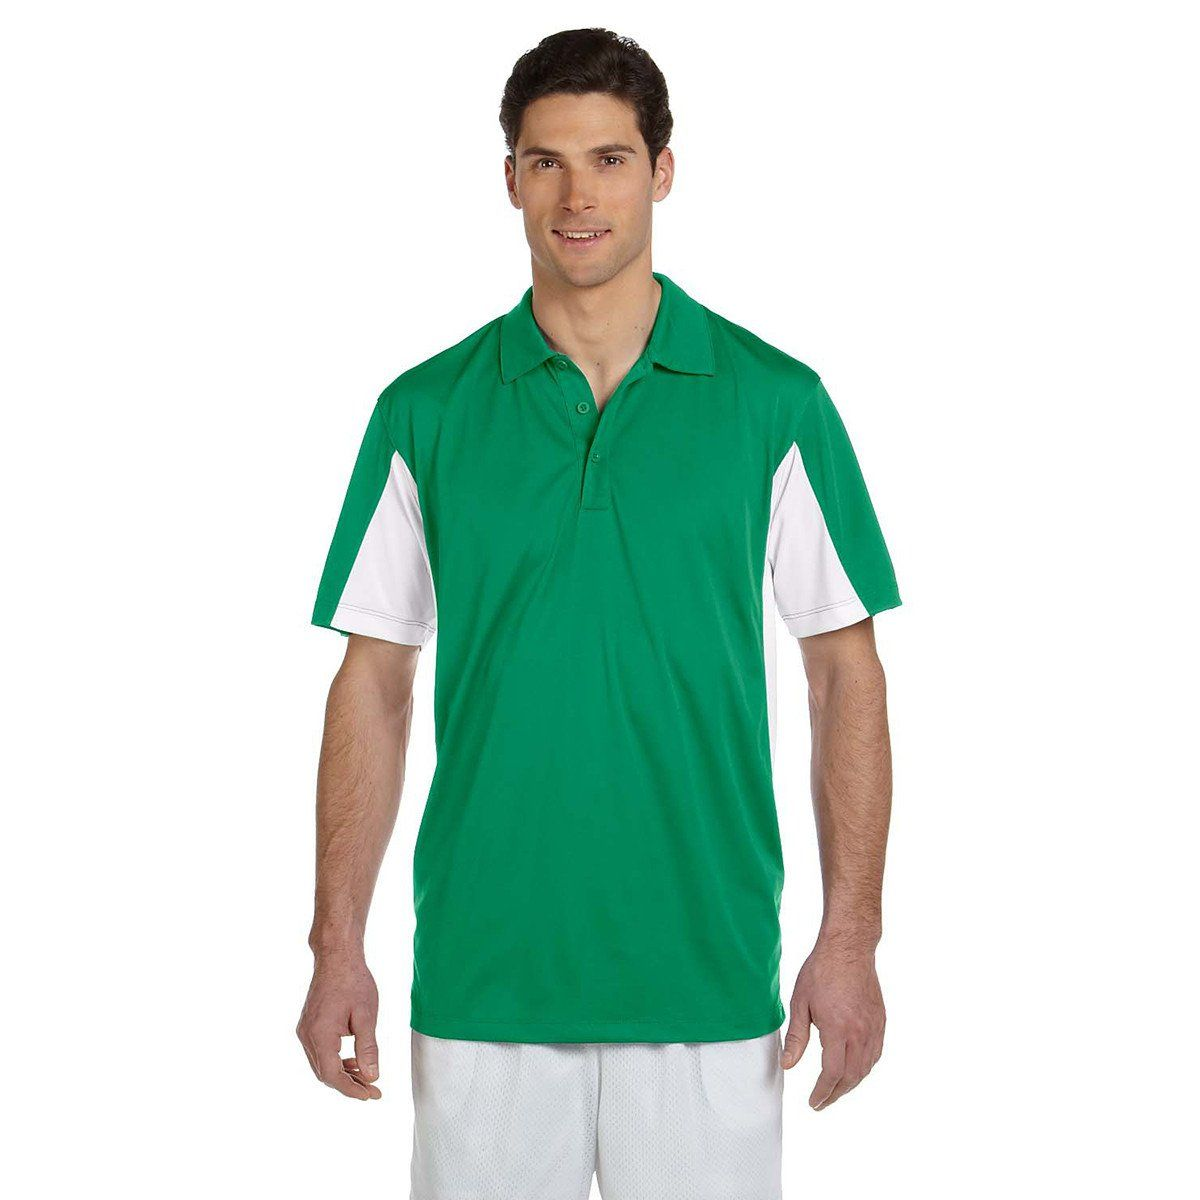 Harriton Men's Kelly/White Side Blocked Micro-Pique Polo